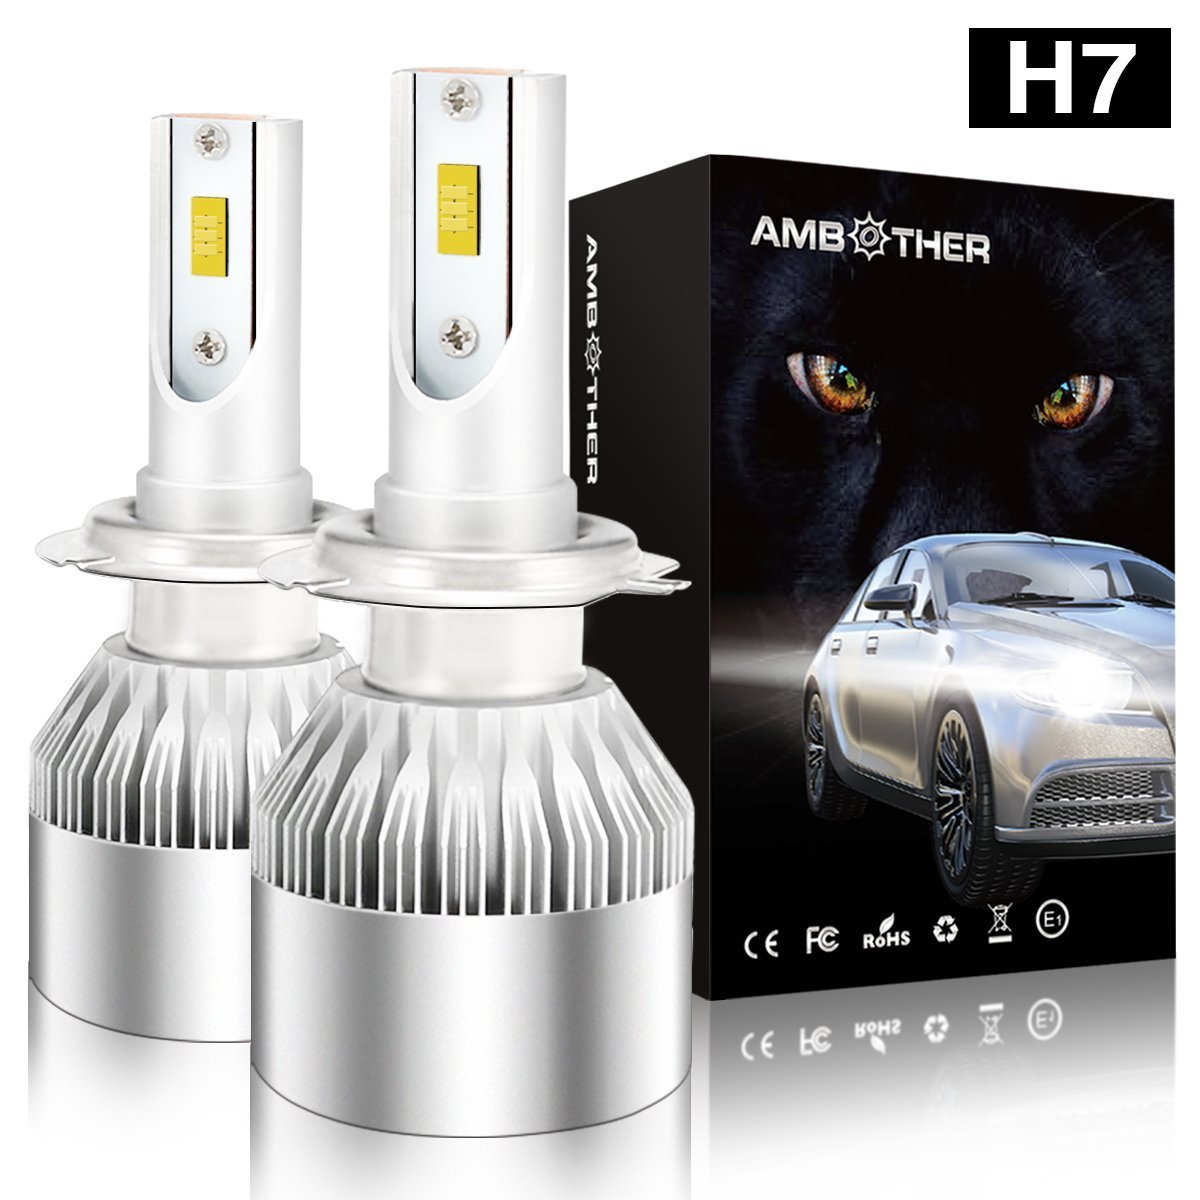 H7 LED Car Headlight Bulbs, AMBOTHER All-in-One Conversion Kit CSP Chips Super Bright 7200LM 72W Exterior Headlamp with 2X Car Dust Covers Included Cool White (Upgraded)